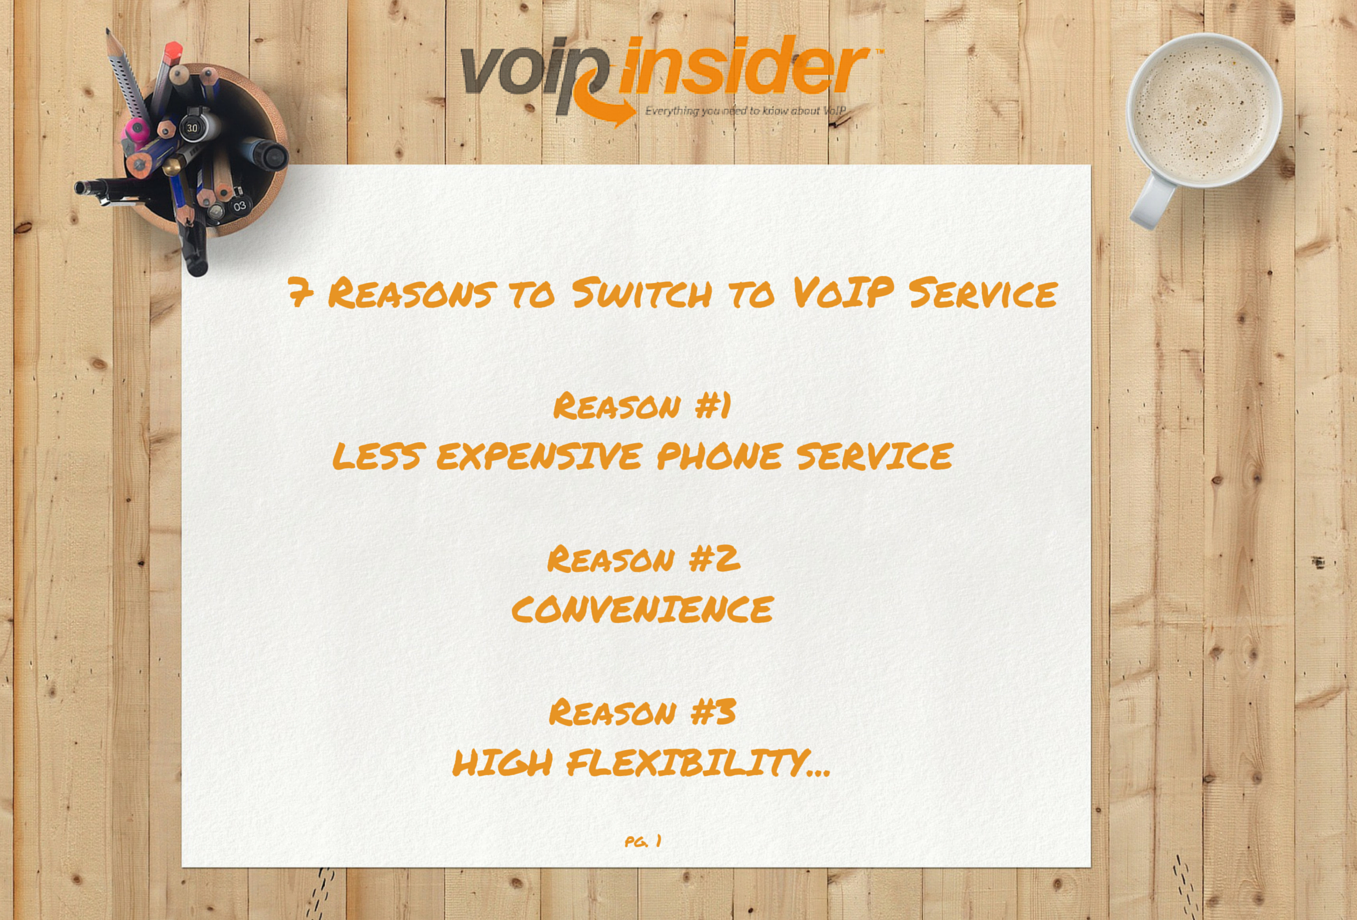 7 Reasons to Switch to VoIP Service - VoIP Insider